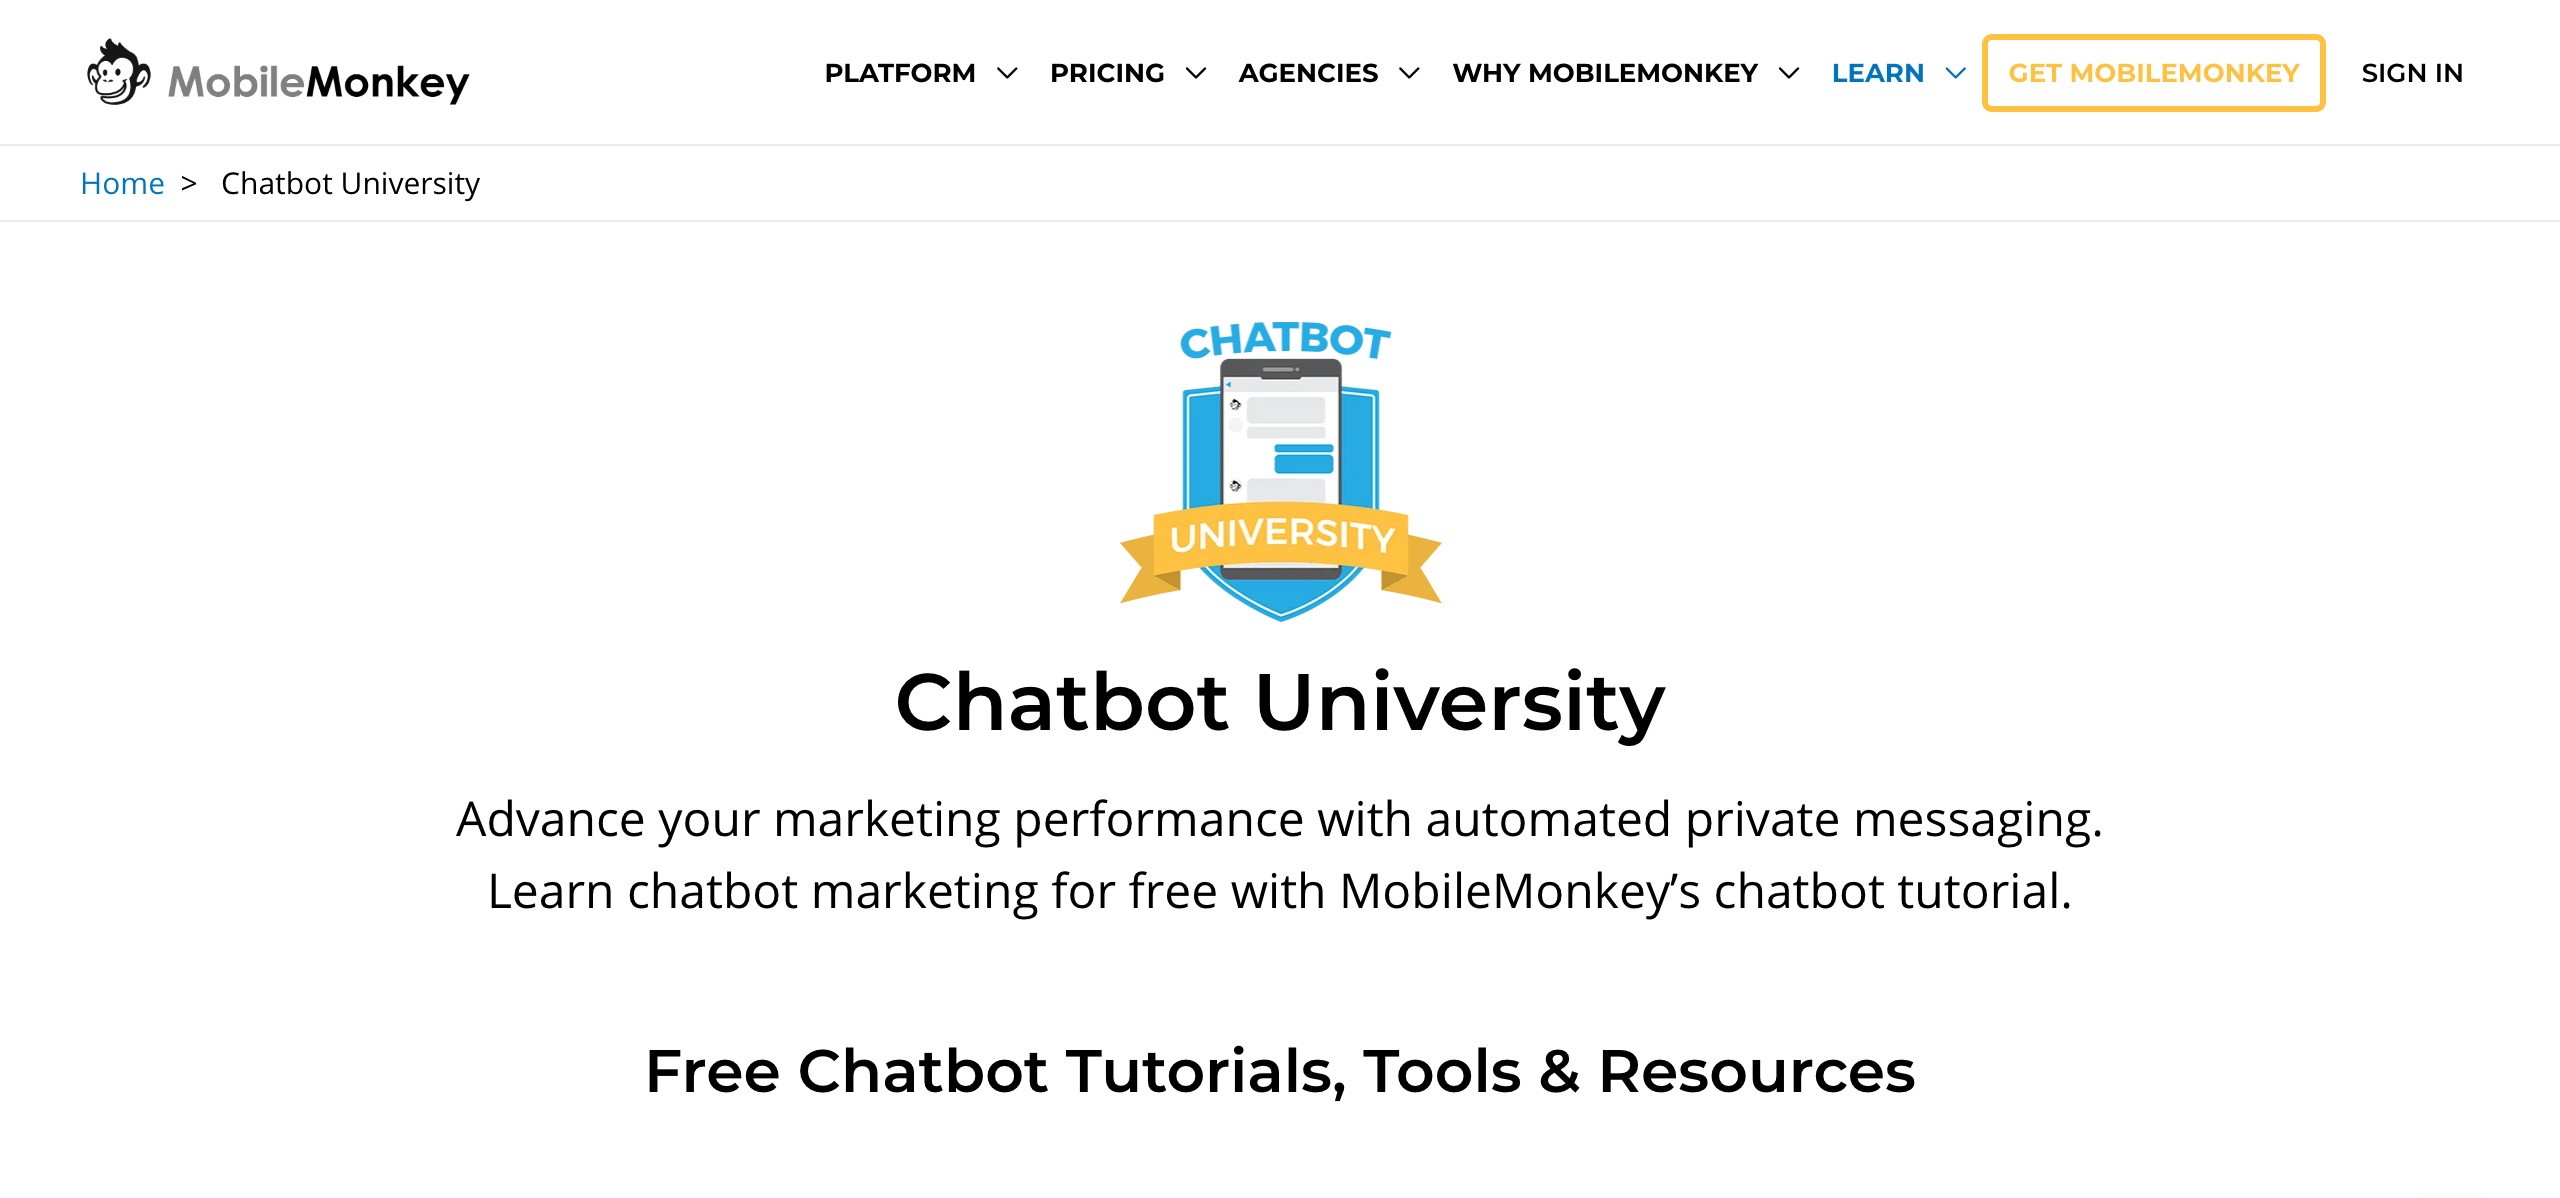 Chatbot University MobileMonkey